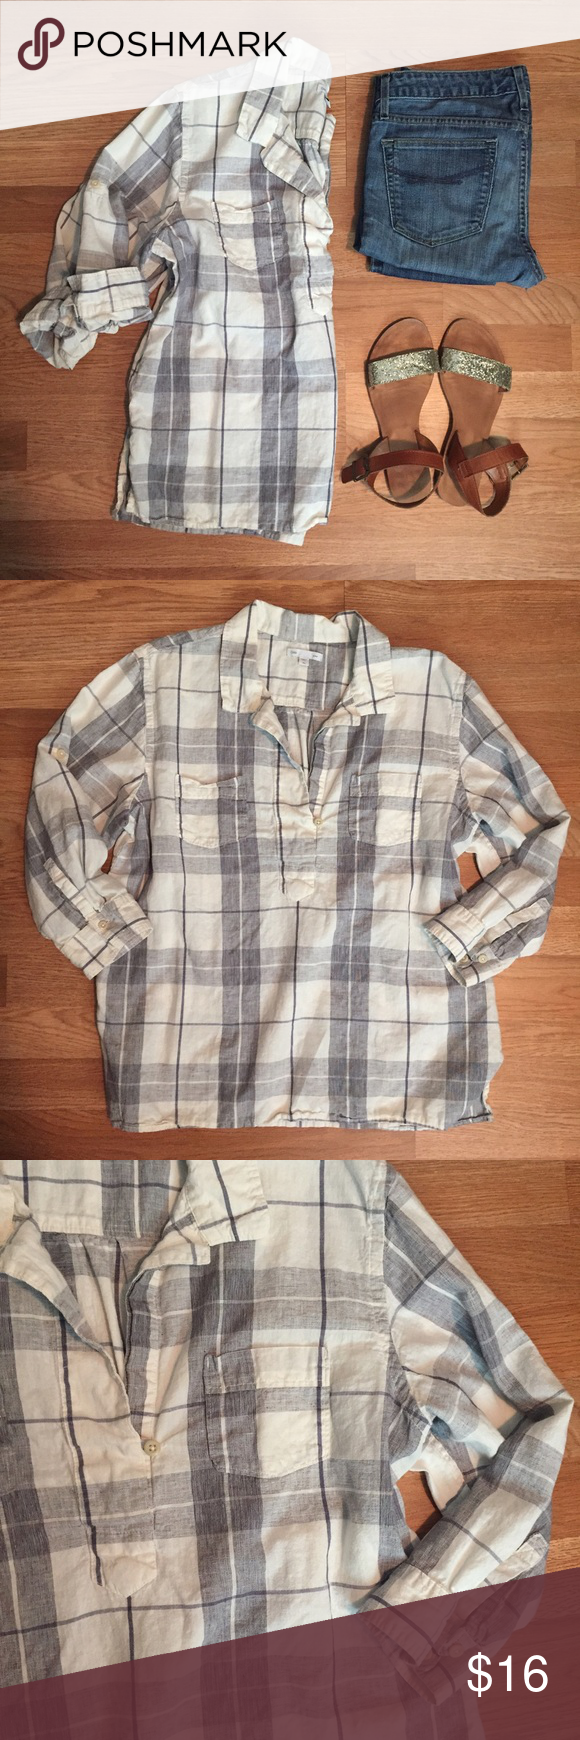 GAP linen plaid popover top sz XL. Cute! GAP linen plaid popover top. Size: XL. Length: 25.5 inches. Chest: 22 inches. Two front buttons. 3/4 length sleeves that can roll up. White color top with gray/navy plaid print. Cute! Gap Tops Button Down Shirts